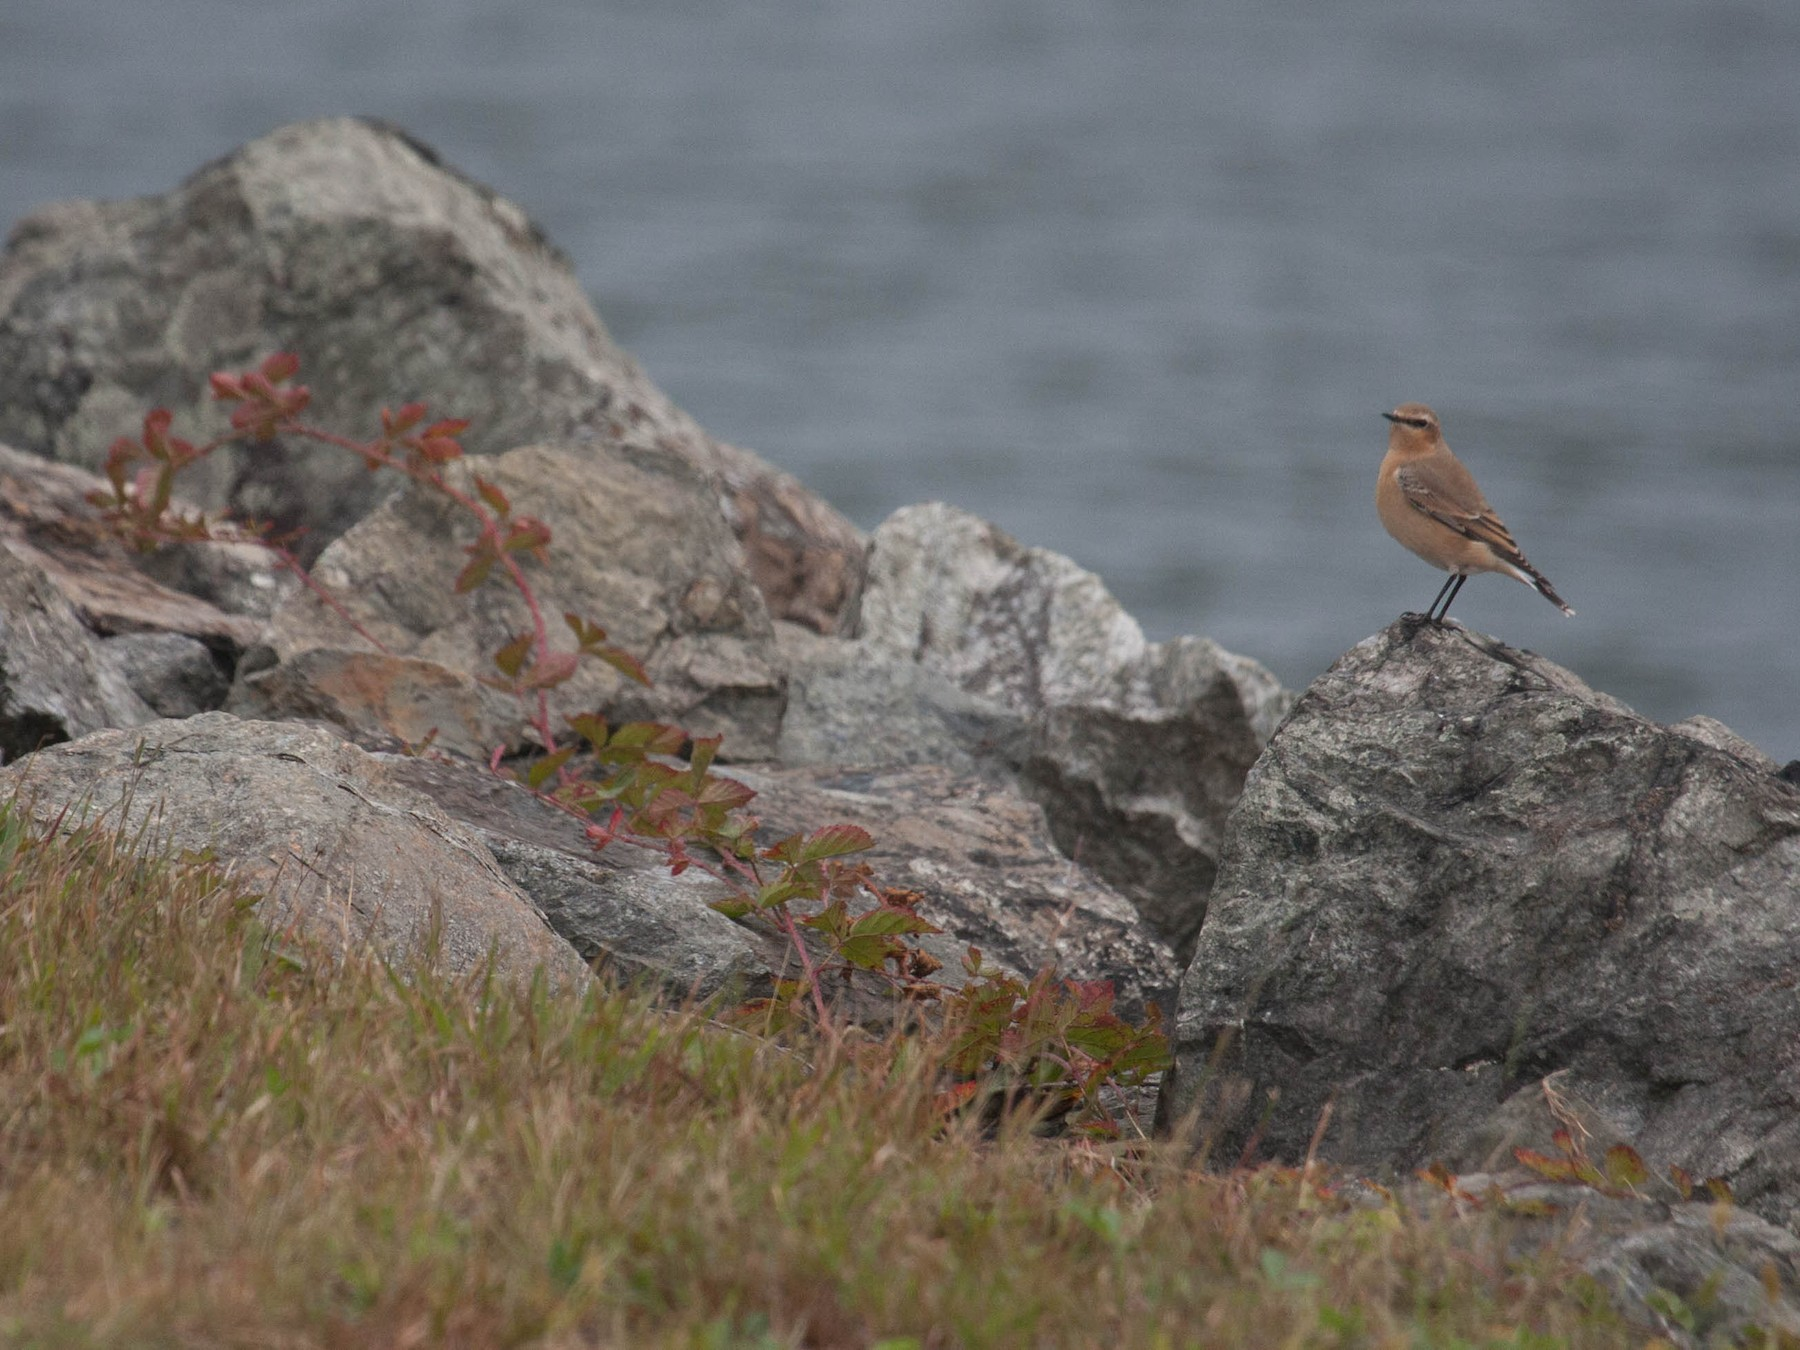 Northern Wheatear - Marshall Iliff